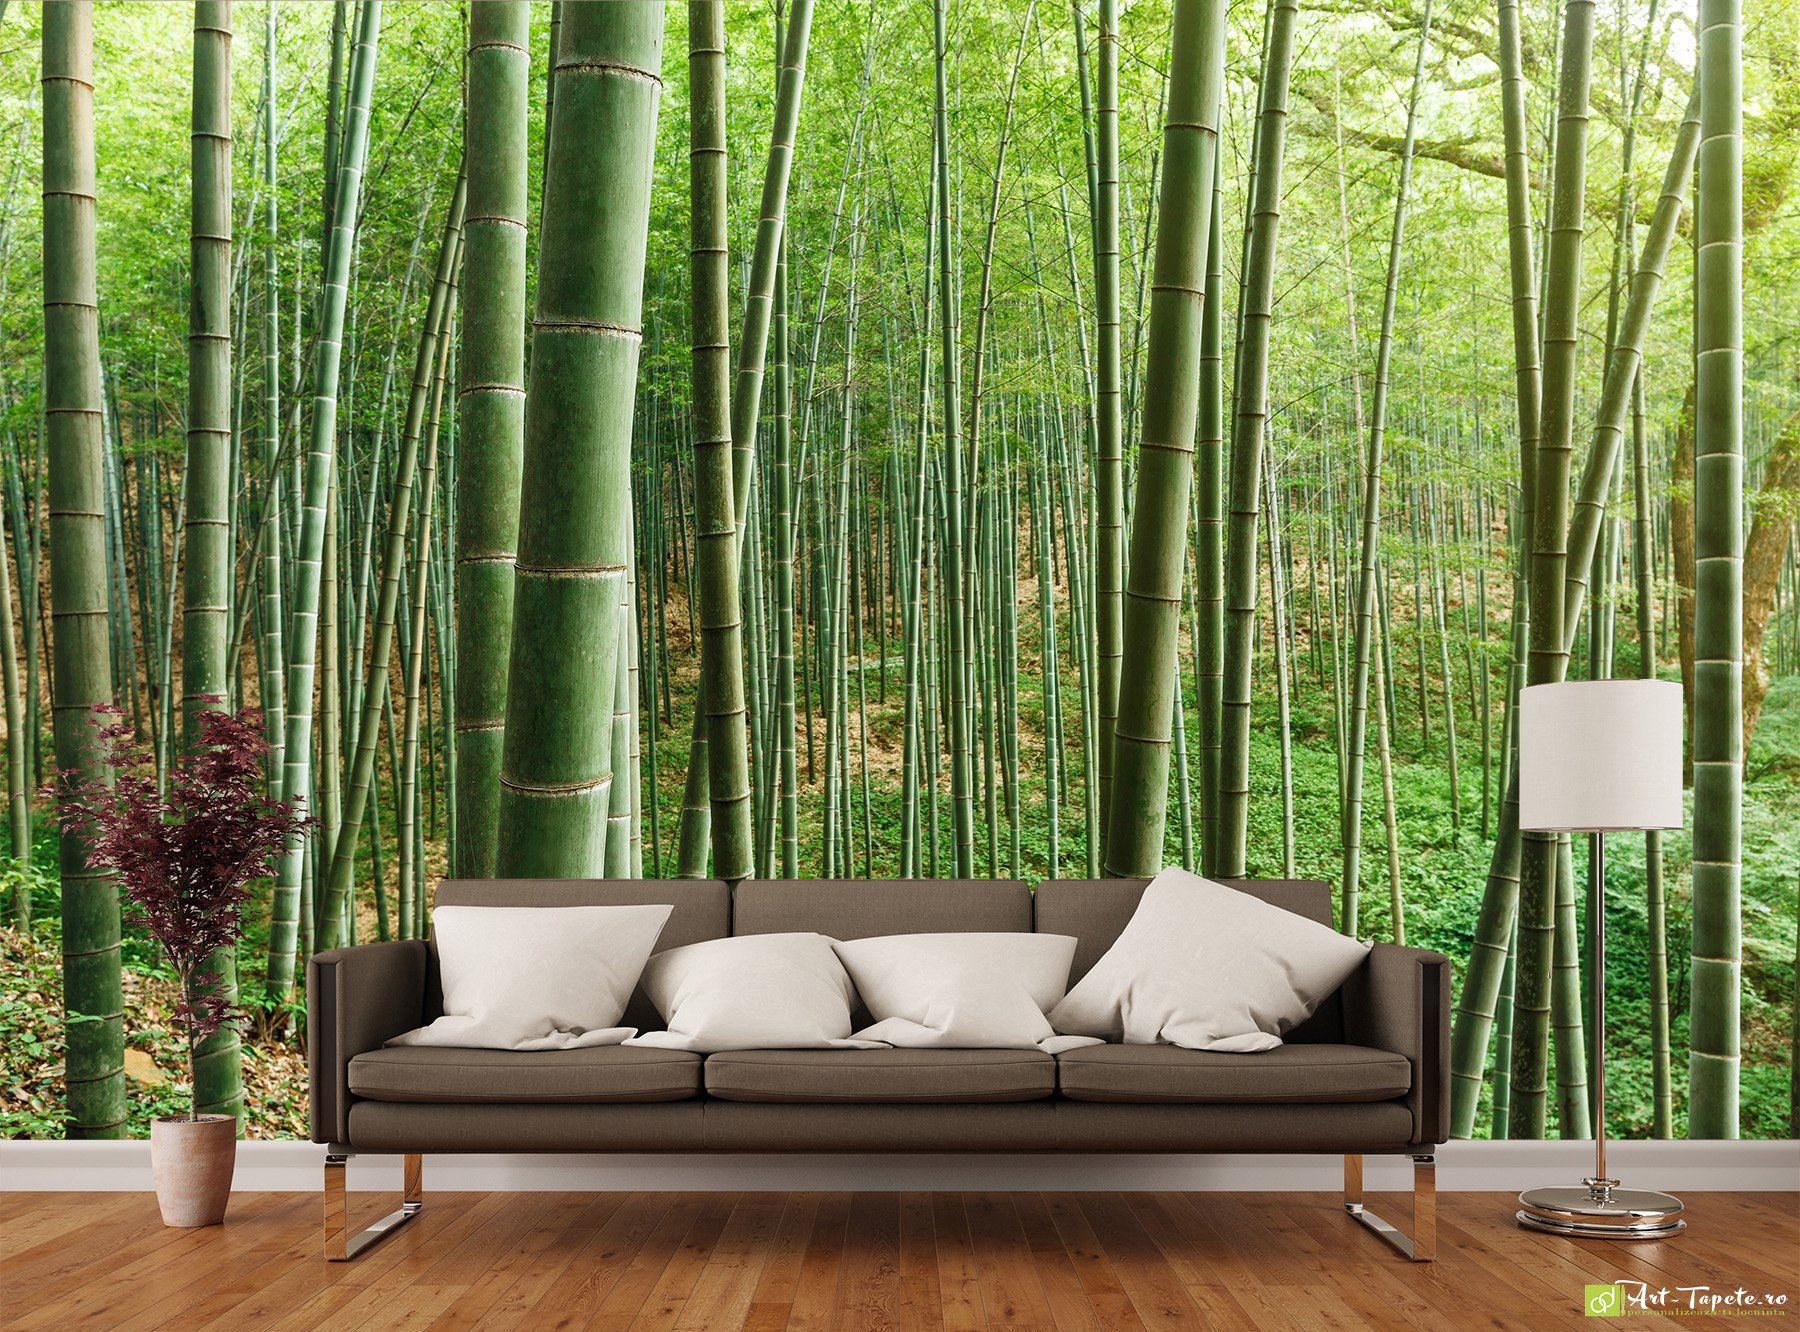 Nature wallpaper wall murals bamboo forest 8 for Bamboo forest wall mural